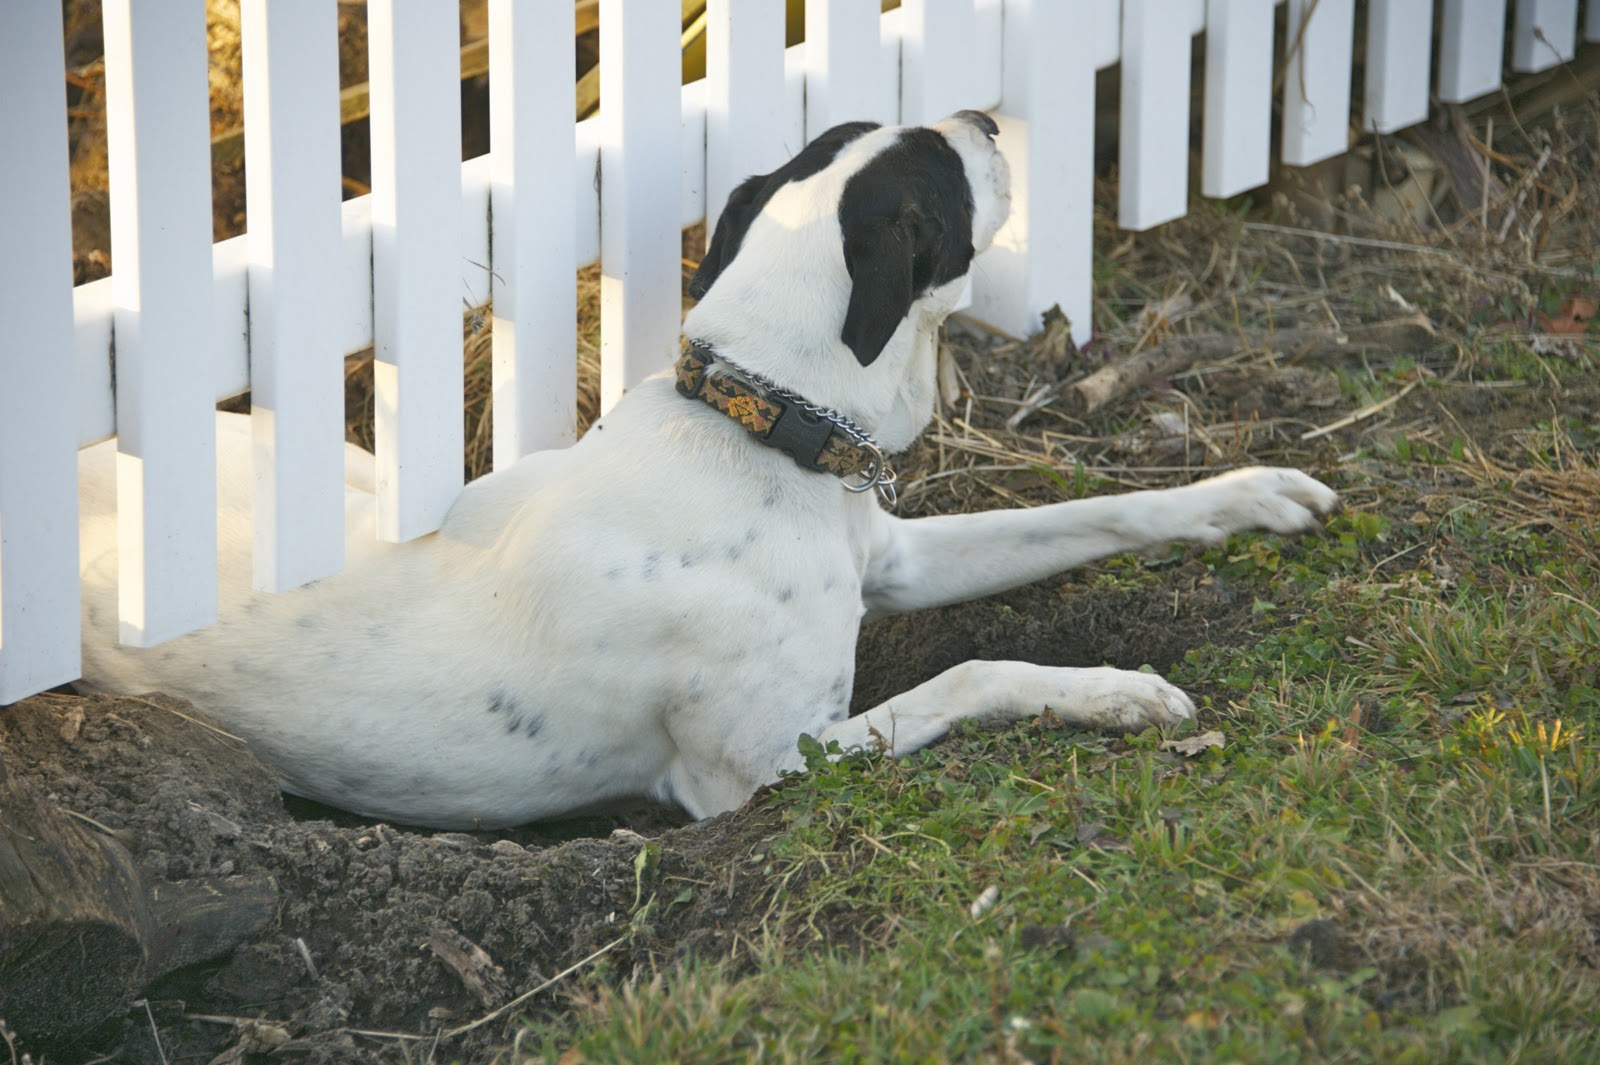 find out why your dog is escaping and how to stop it from